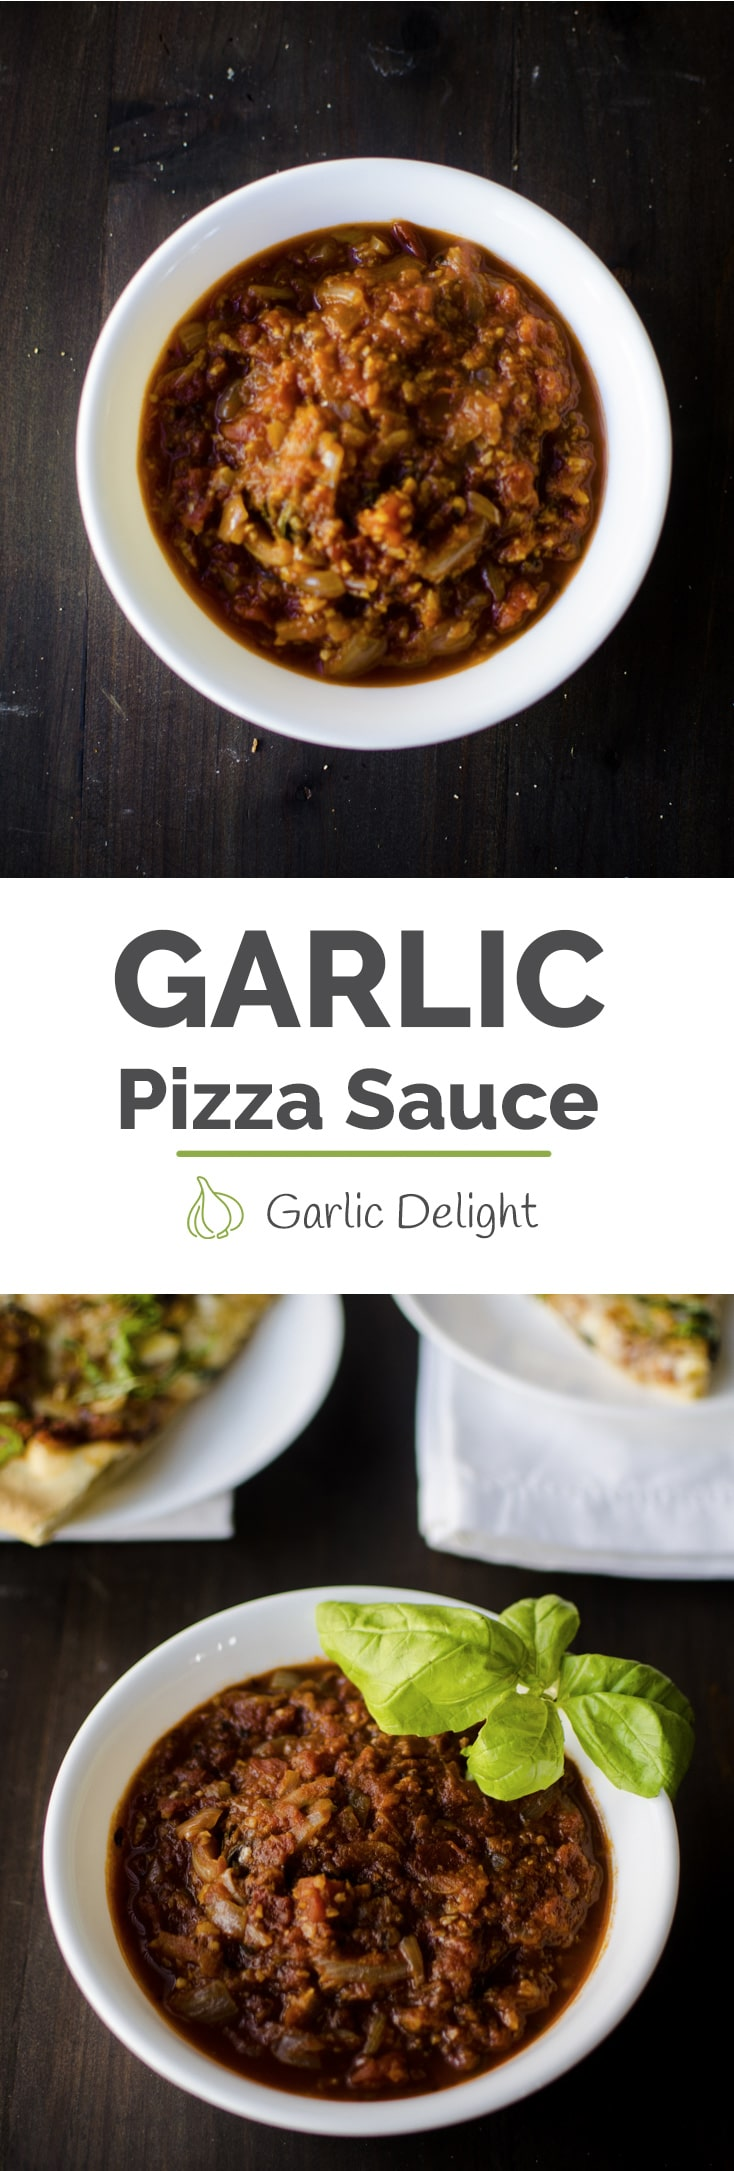 Homemade Garlic Pizza Sauce -- Piping hot garlic pizza is much yummier with slowly simmered homemade garlic pizza sauce. A bit of sugar and red pepper flakes make this recipe extra special. -- garlicdelight.com